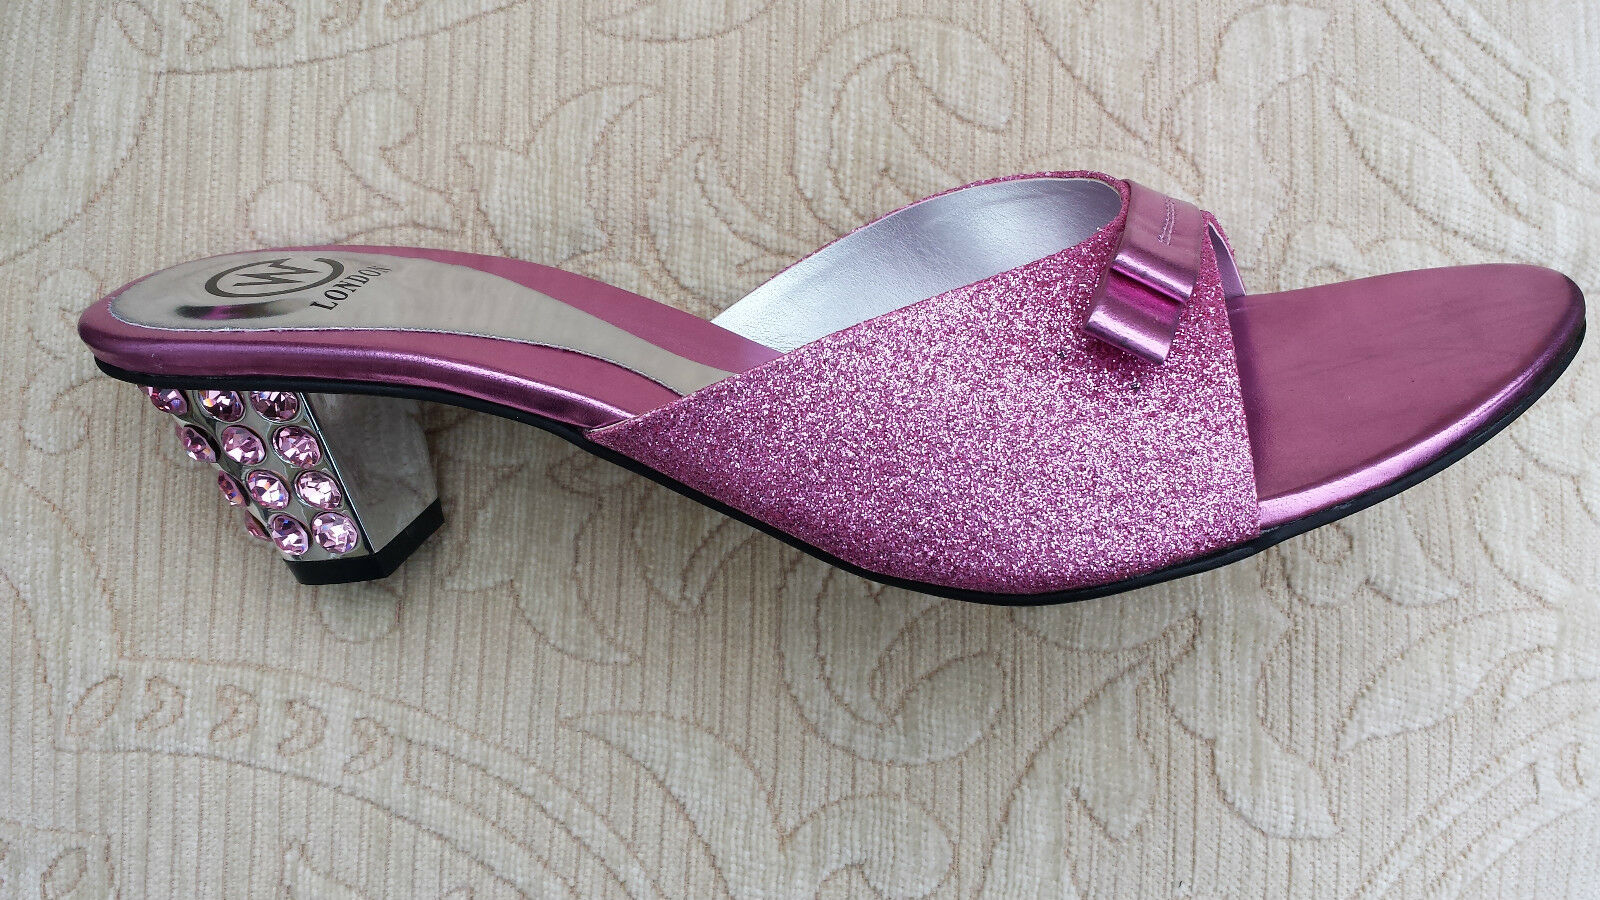 PINK LADIES WEDDING PARTY SLIPPER/MULES/<wbr/>BACKLESS SMALL HEEL SIZE 8